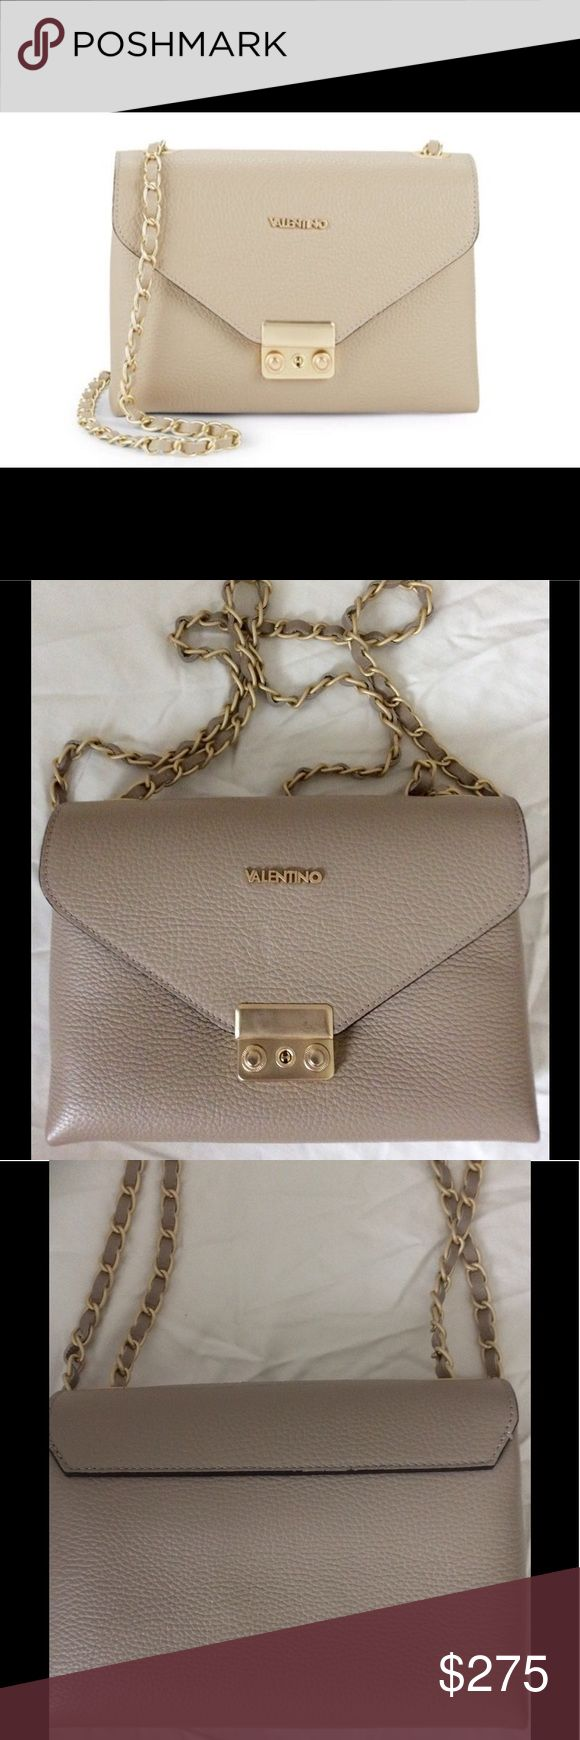 "Valentino by Mario Valentino Crossbody Handbag NWT BRAND NEW WITH TAGS, CARE CARD & DUST BAG.....MSRP $745.00...SOLD OUT IN STORES EVERYWHERE❗️ Details: A chic crossbody bag for stylish on-the-go wear Crossbody strap, 21"" drop Front flap with push-lock closure Two inside slip pockets One inside zip pocket Goldtone metal hardware Includes dust bag Fabric lining 9"" W X 6"" H X 2.5"" D Dove Gray Genuine Leather Made in Italy Style code: 0400095349365 Mario Valentino Bags Crossbody Bags"